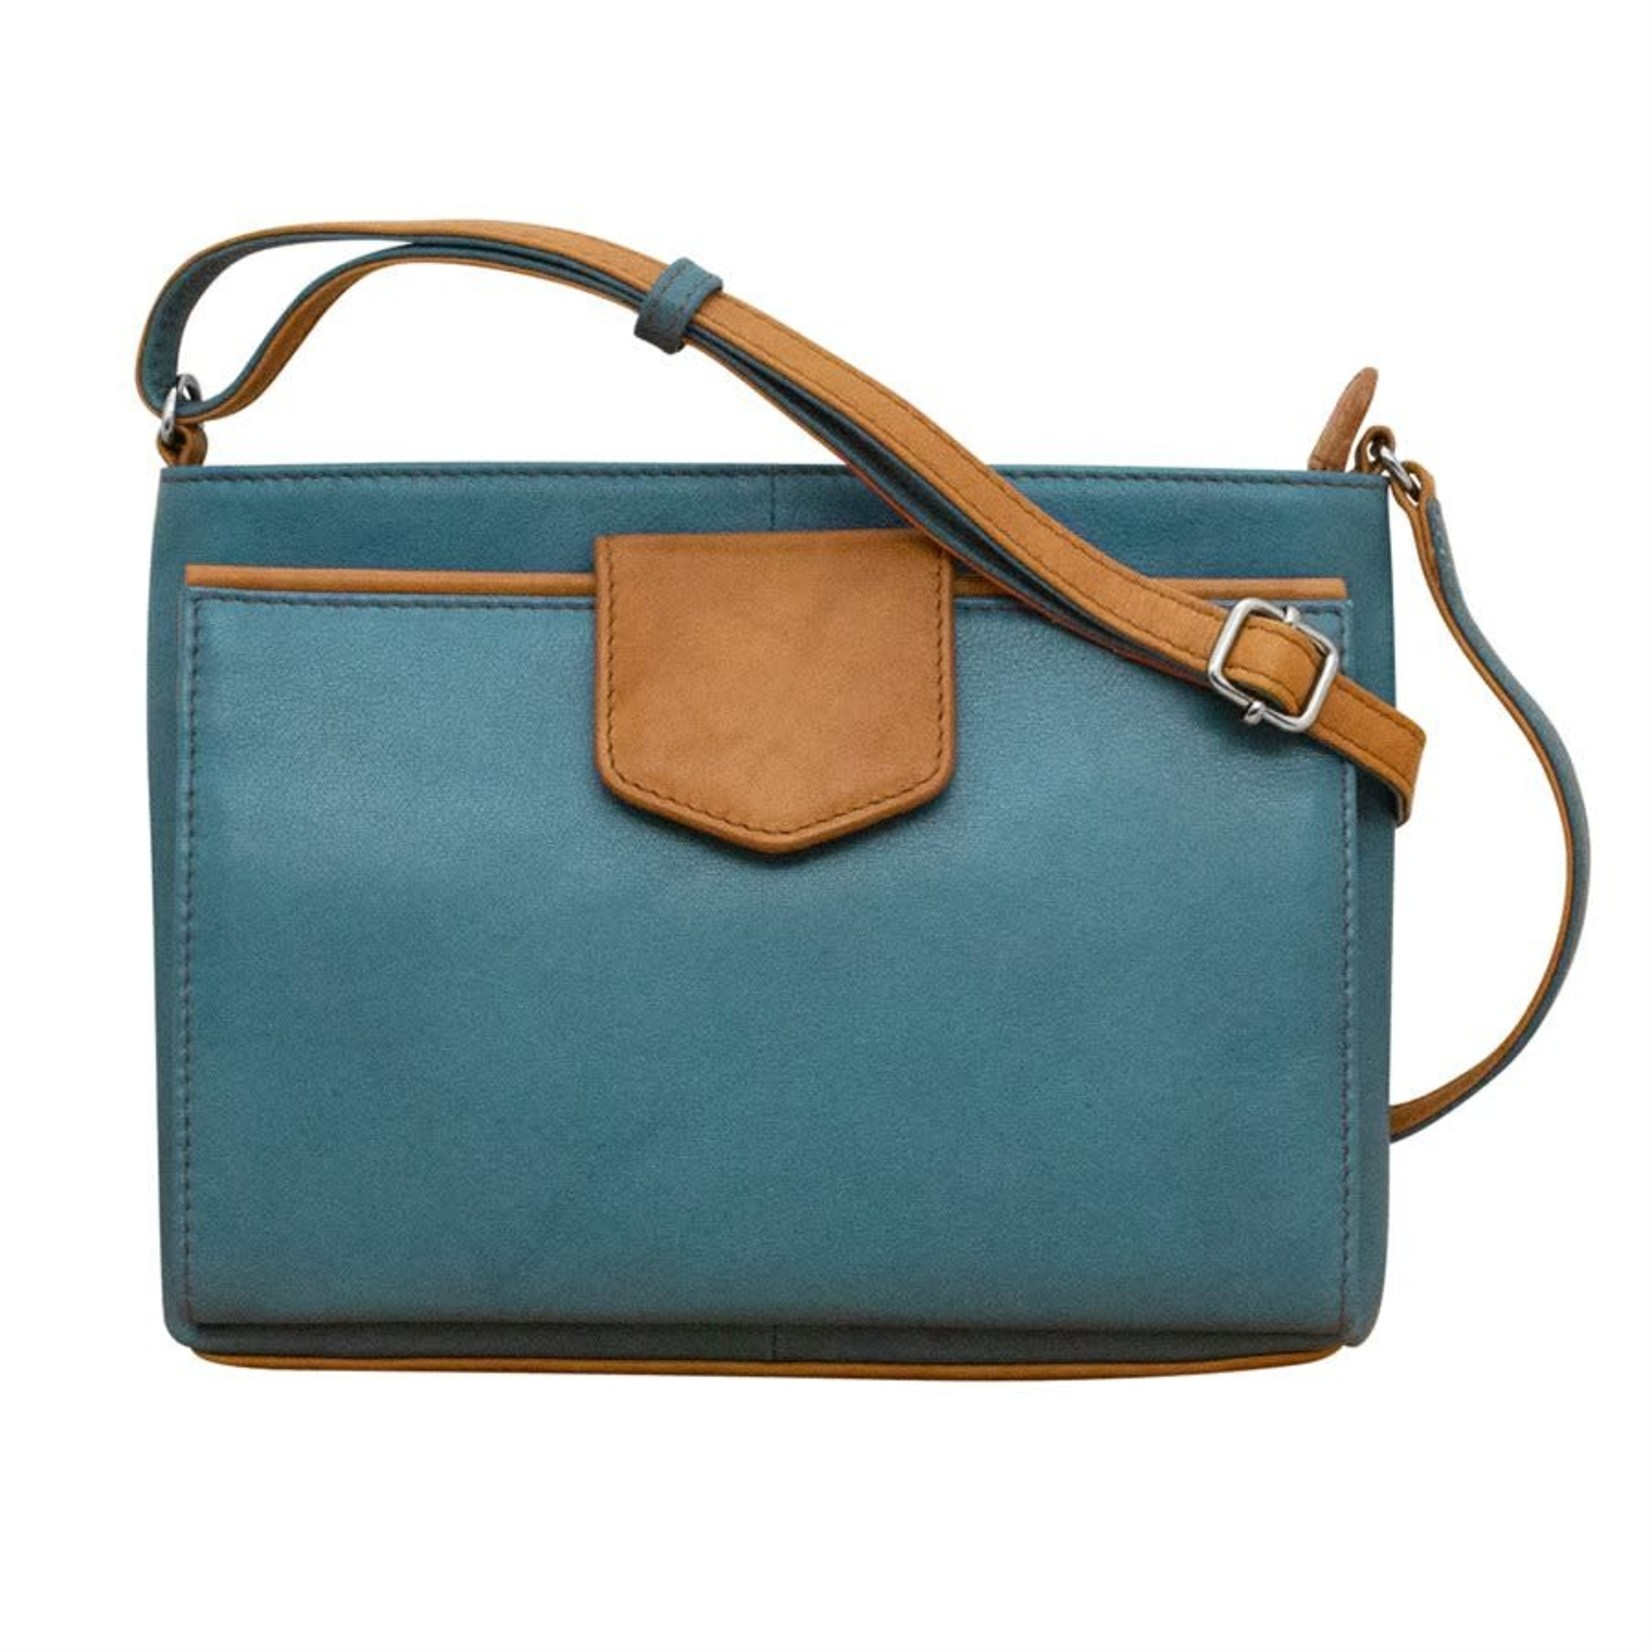 Leather Handbags and Accessories 6592 Jeans Blue/Antique Saddle - Organizer Crossbody